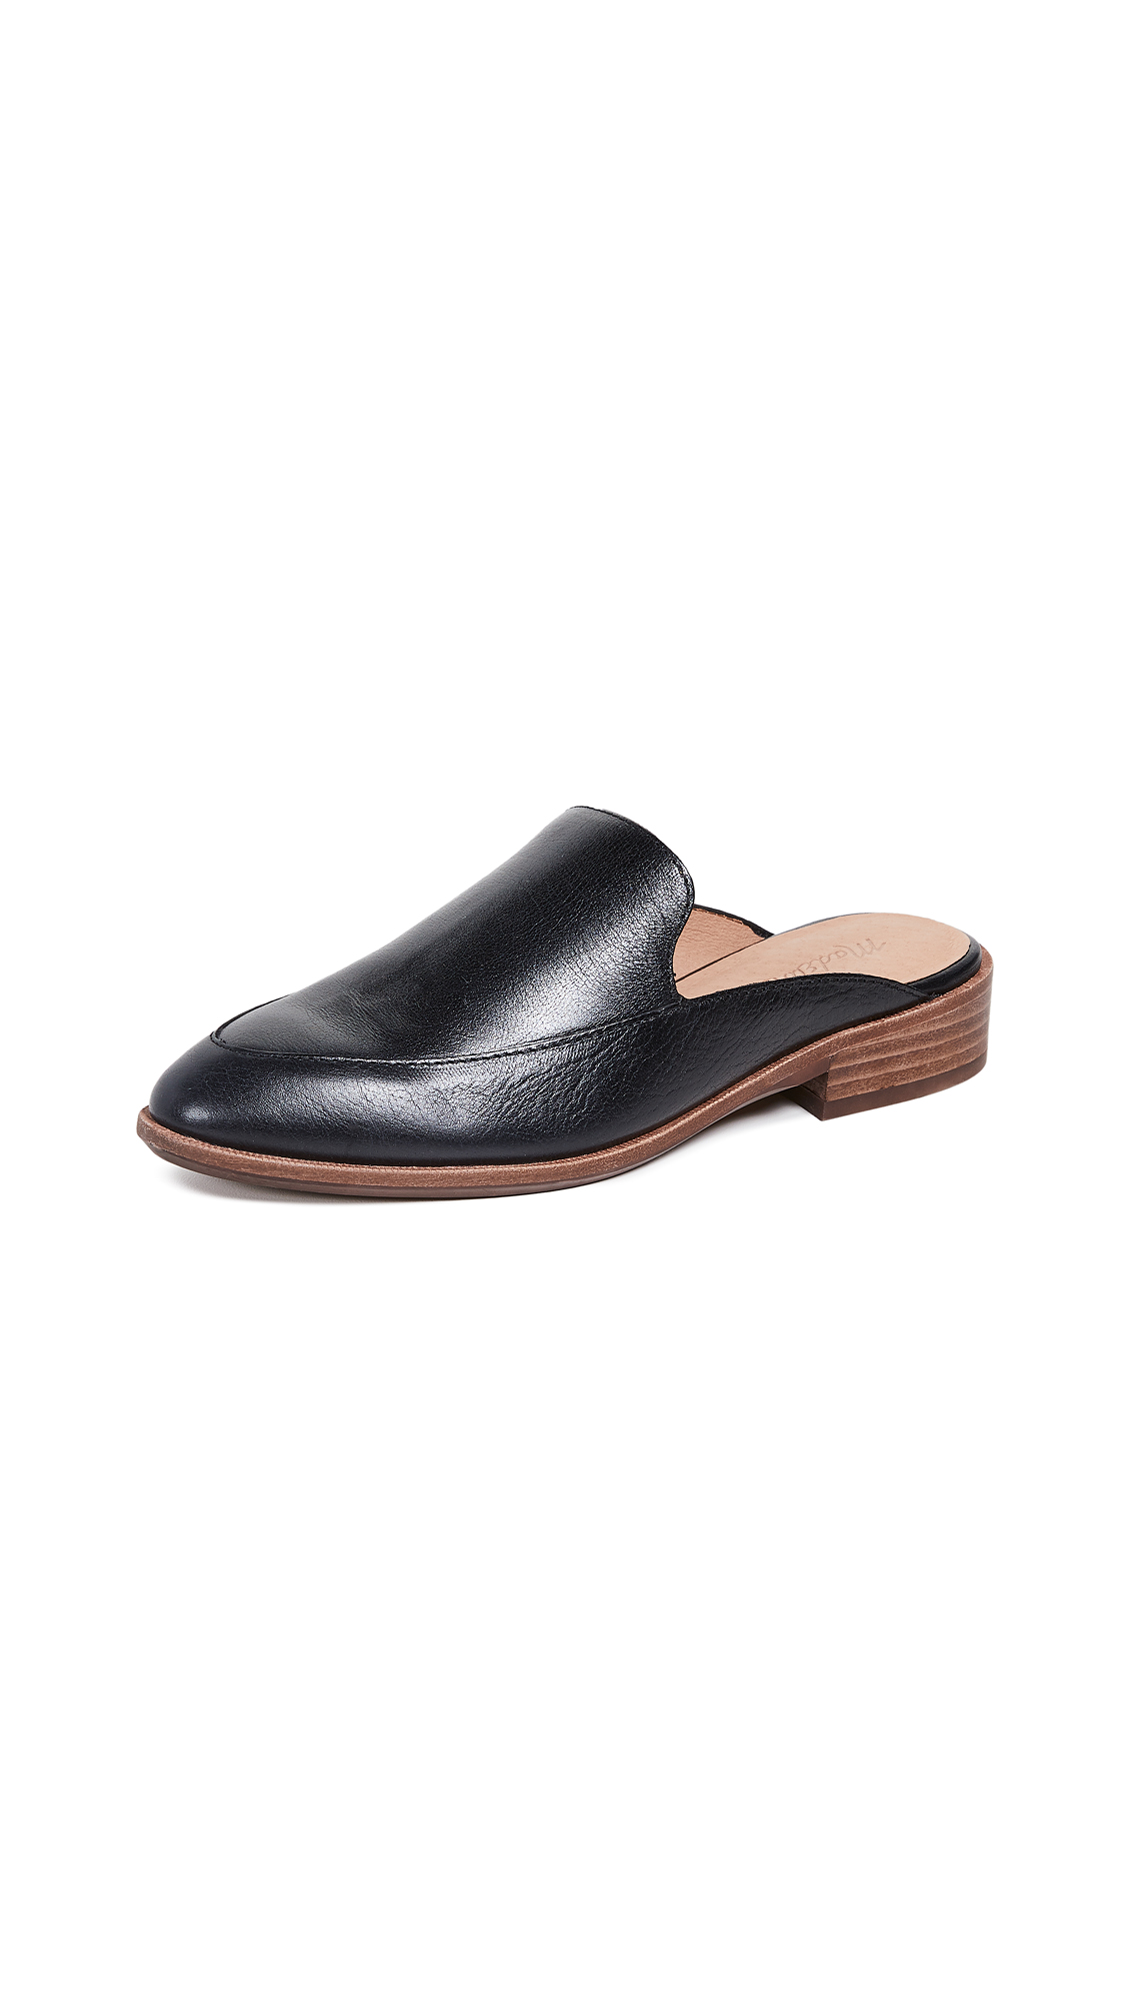 Madewell The Frances Loafer Mules